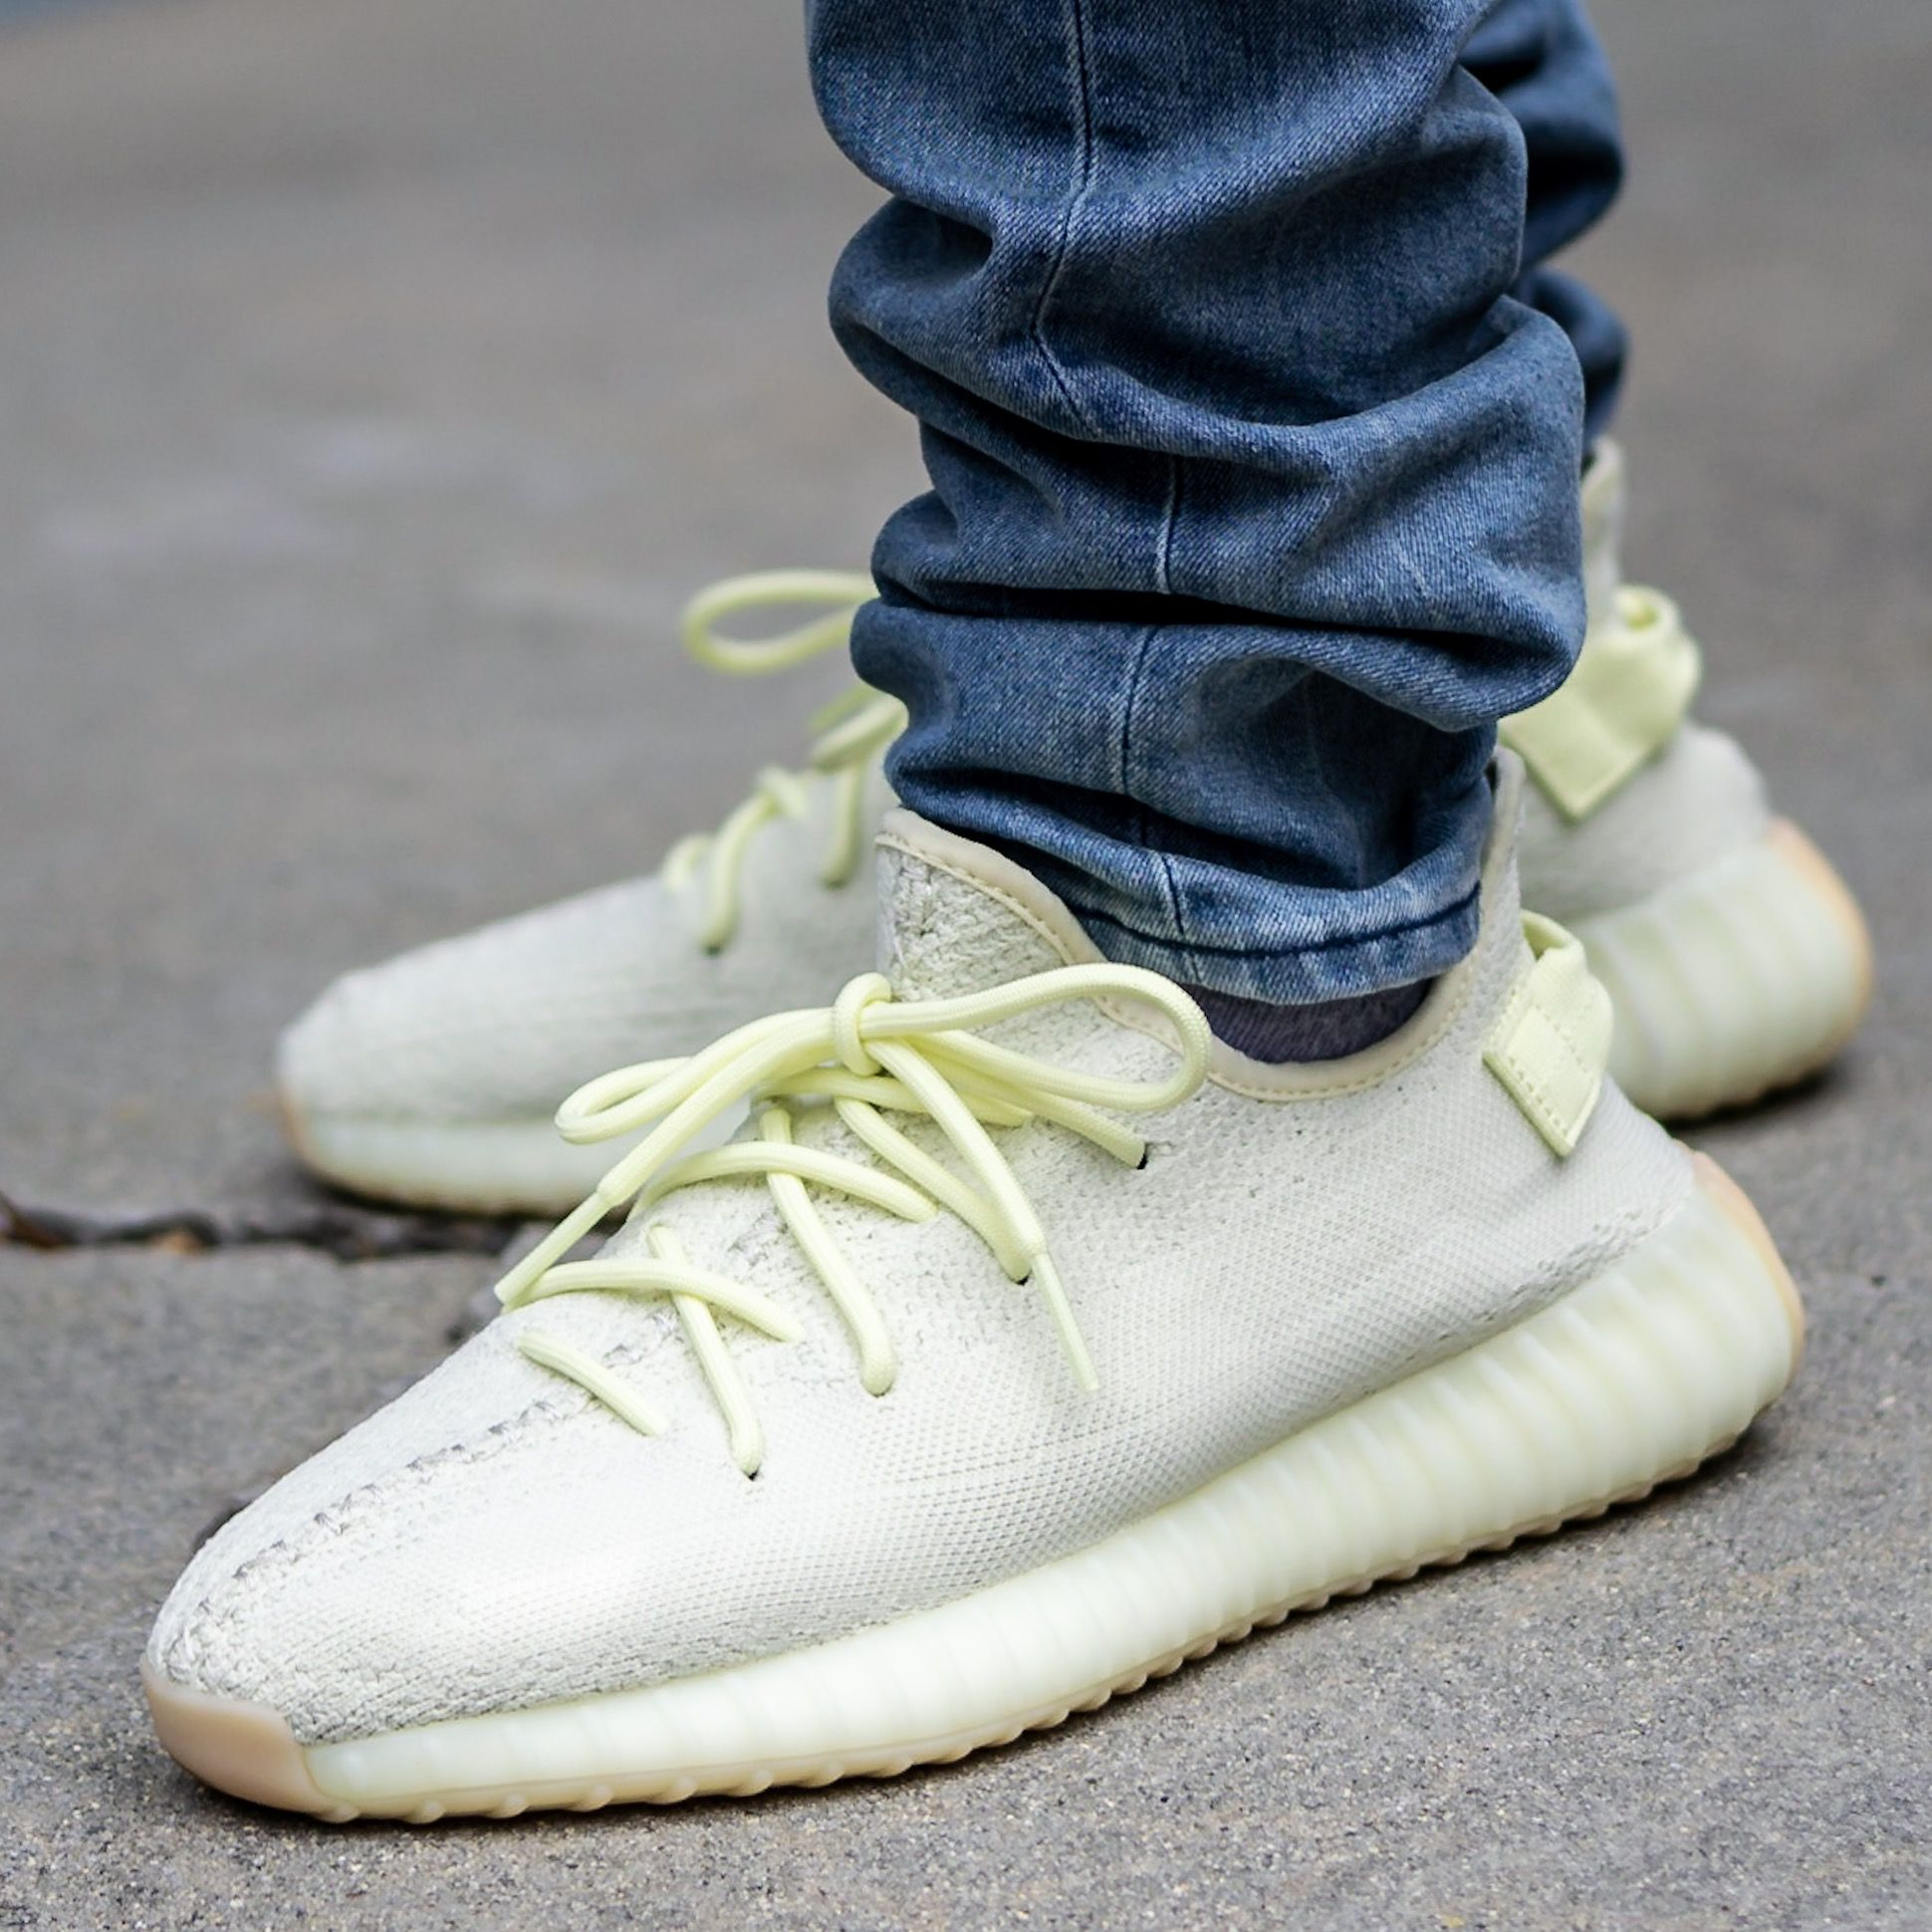 Adidas Yeezy Boost 350 V2 Butter On Feet Sneaker Review